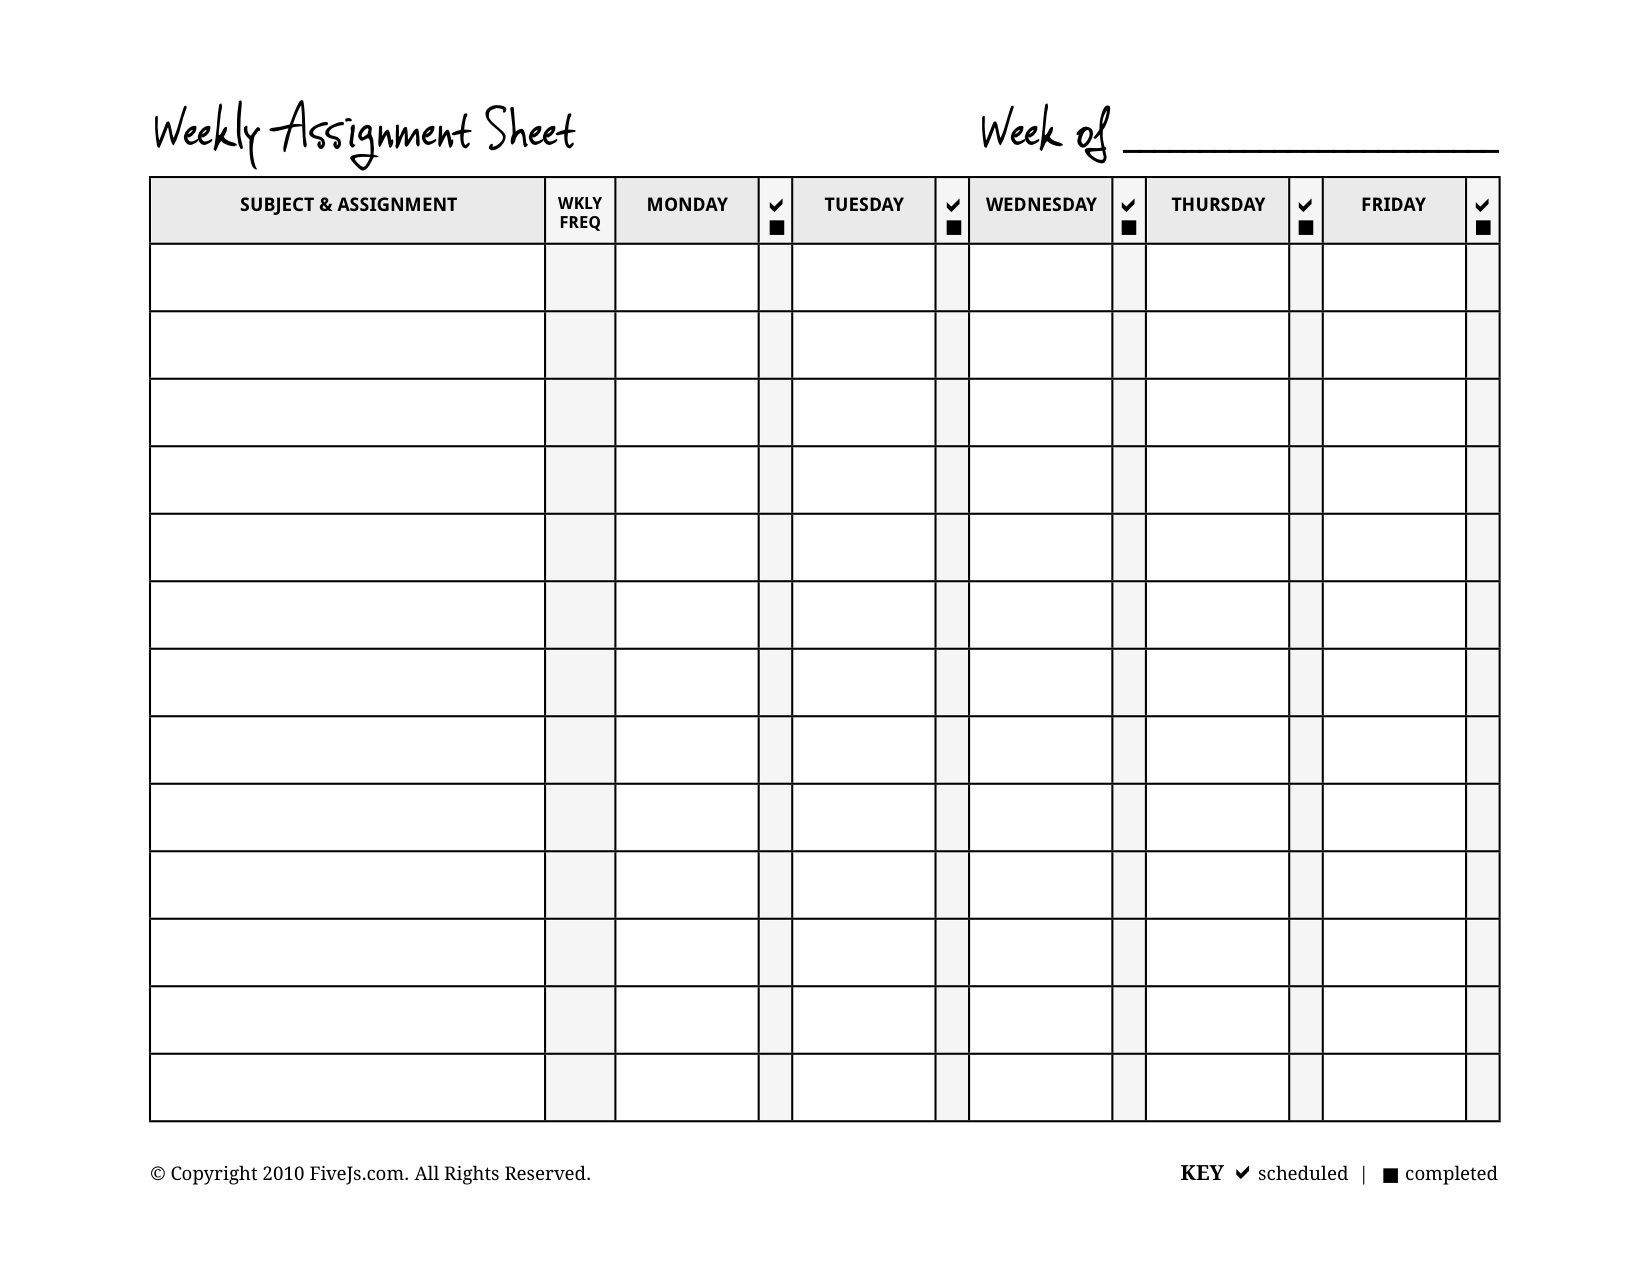 Homeschool Weekly Assignment Planner | Pinterest | Pdf, Homeschool ...